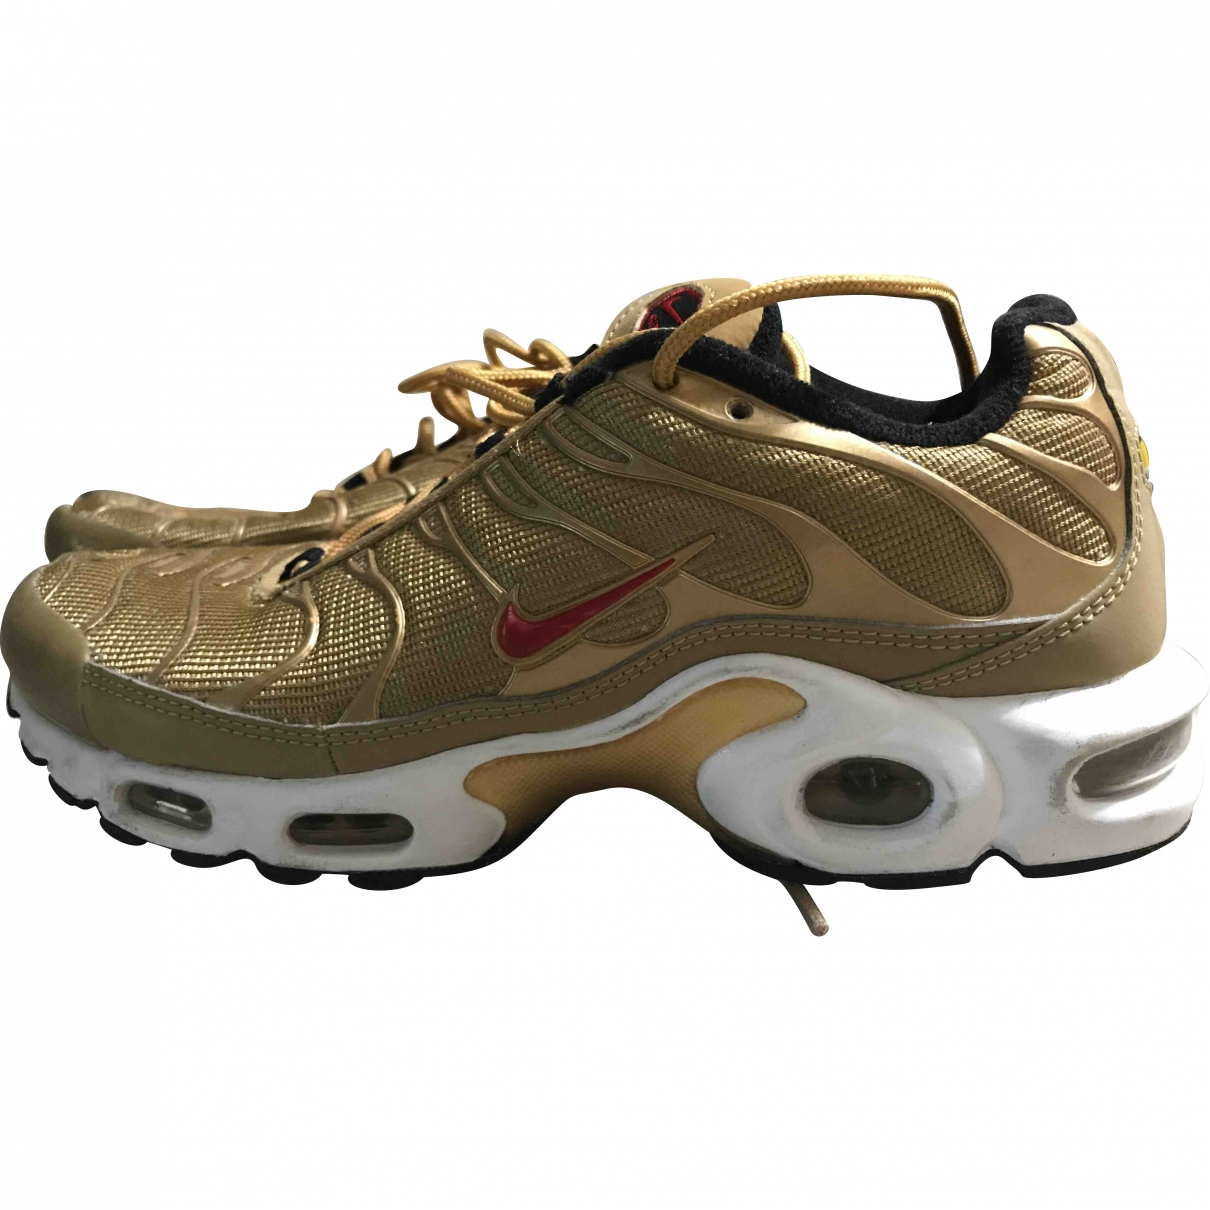 Nike Tuned 1 Gold Cloth Trainers for Men 40.5 EU